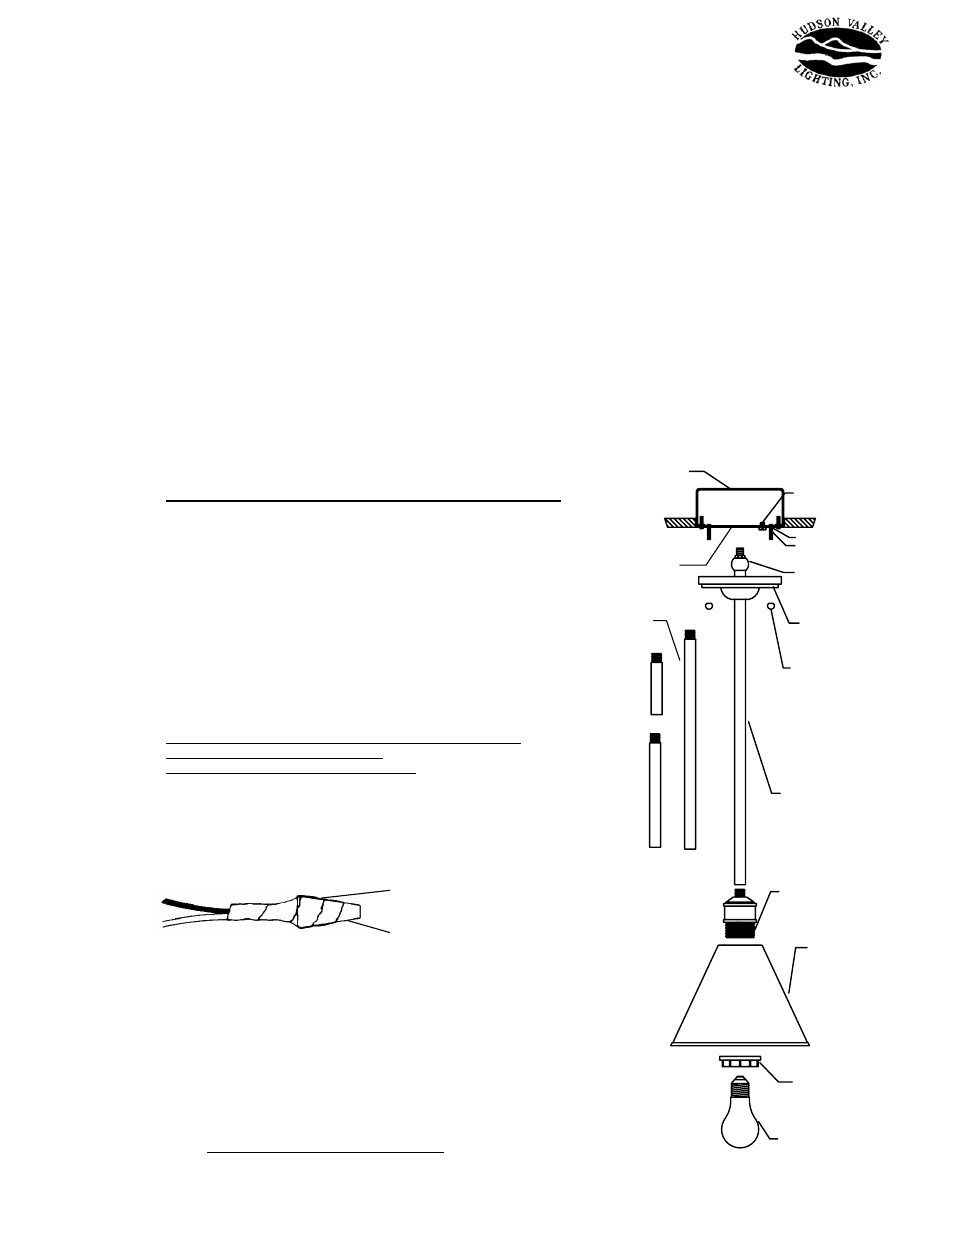 Hudson Valley Lighting EXETER 4722 User Manual | 1 page | Also for: EXETER  4732